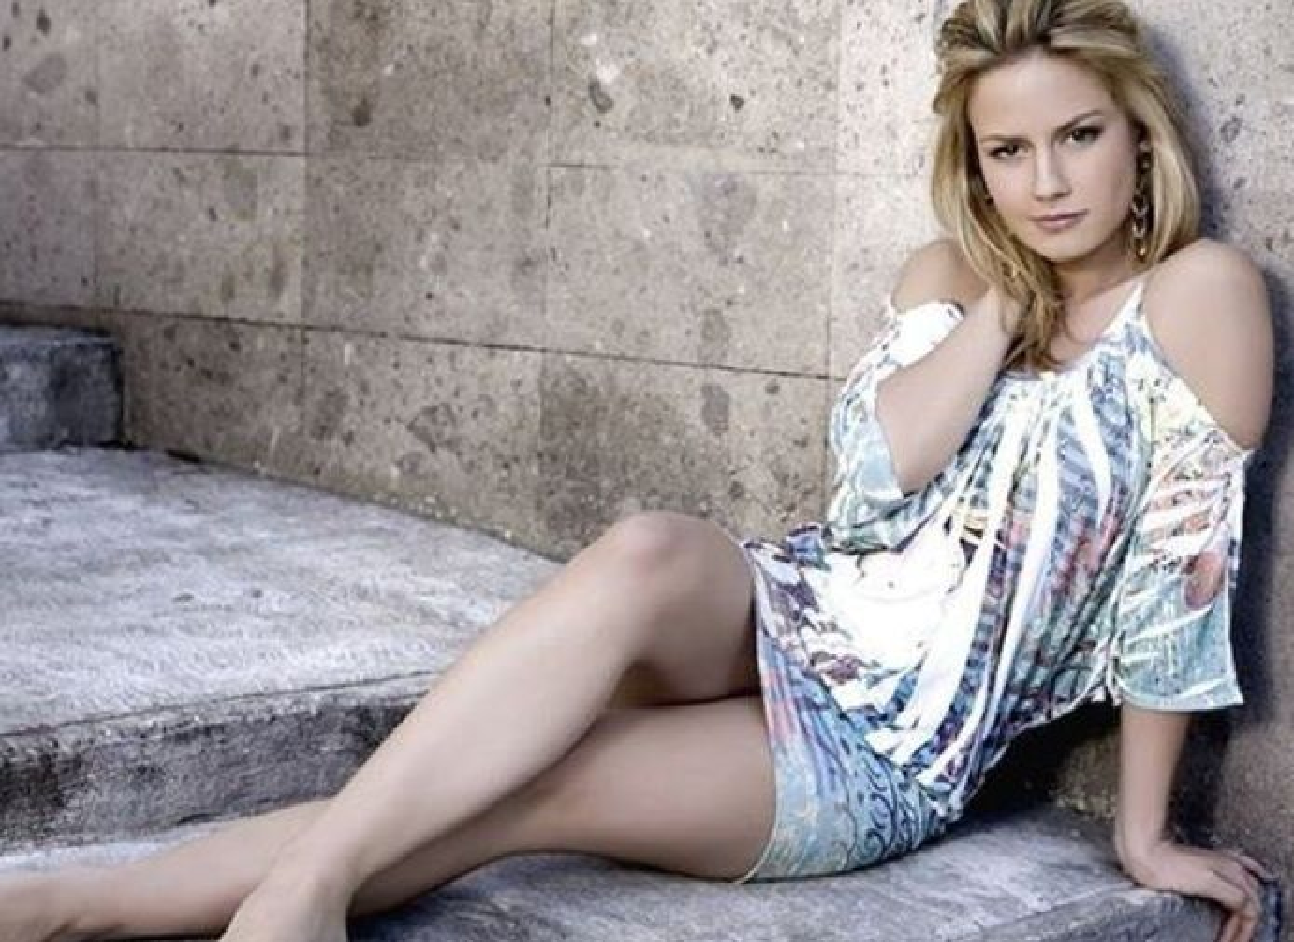 Altair Jarabo Codigo Postal how rich is altair jarabo? bio: wife, daughter, net worth